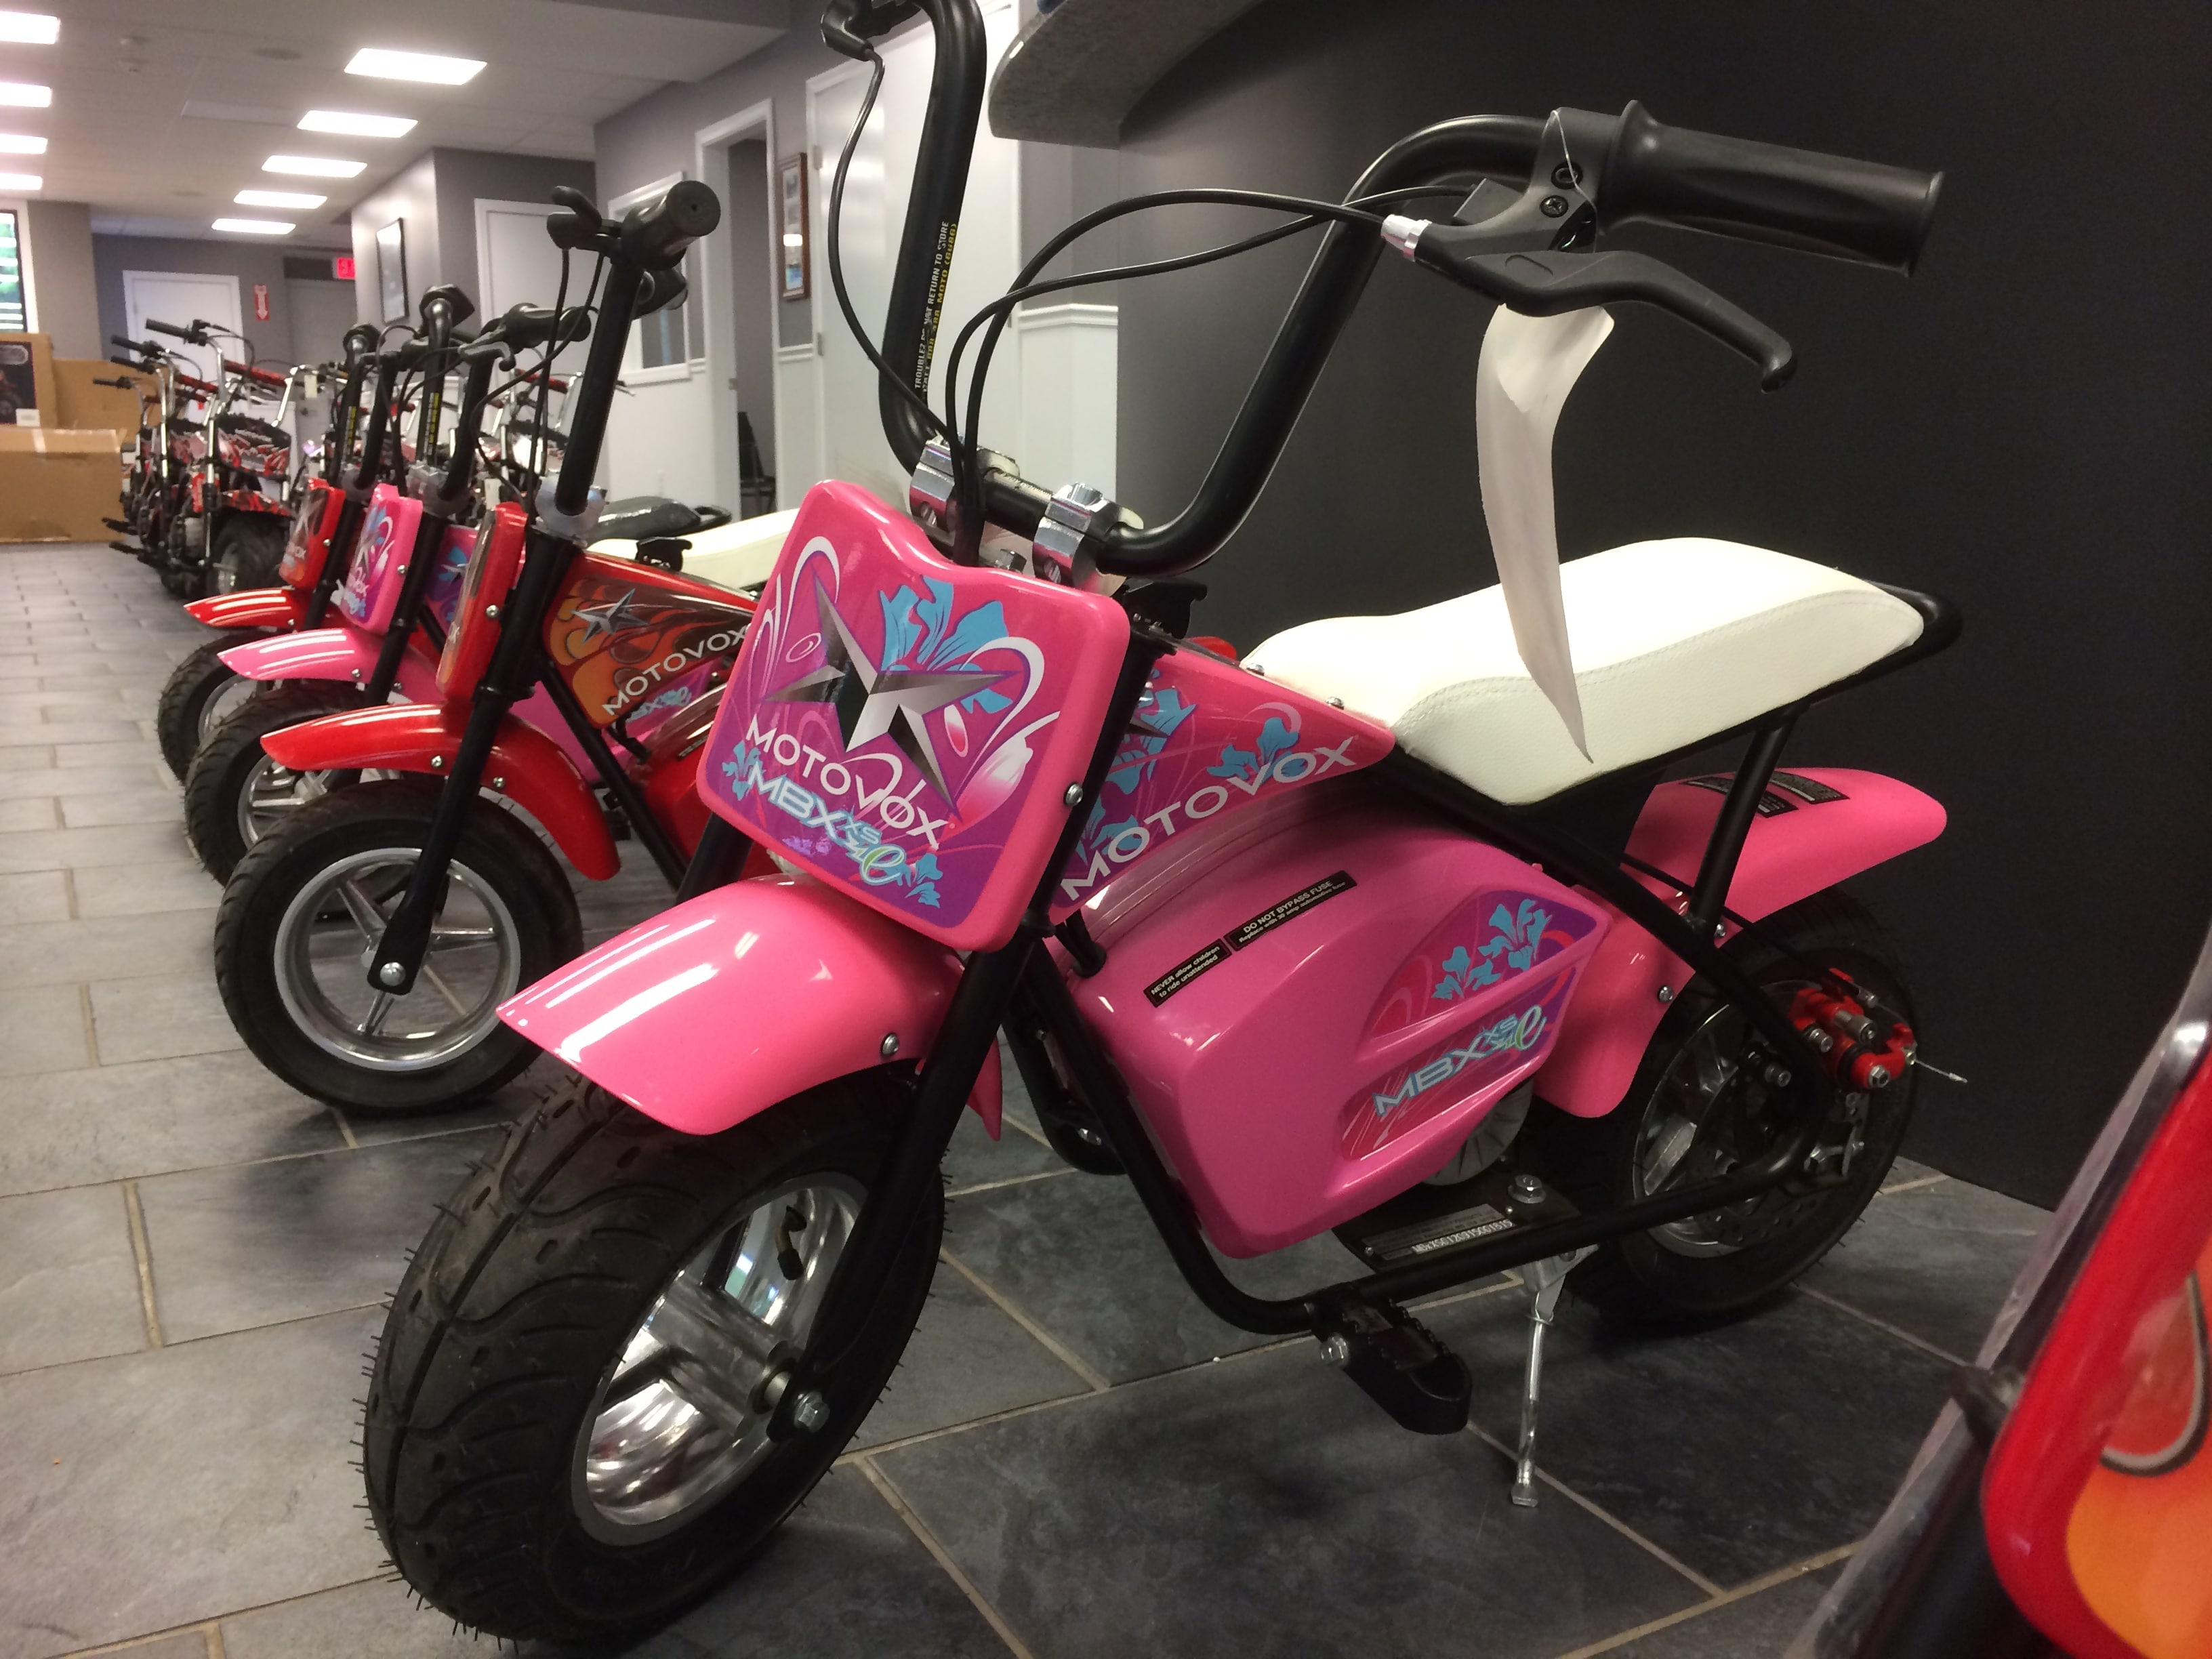 Bikes Bikes For Sale Motovox Mini Bikes for sale in